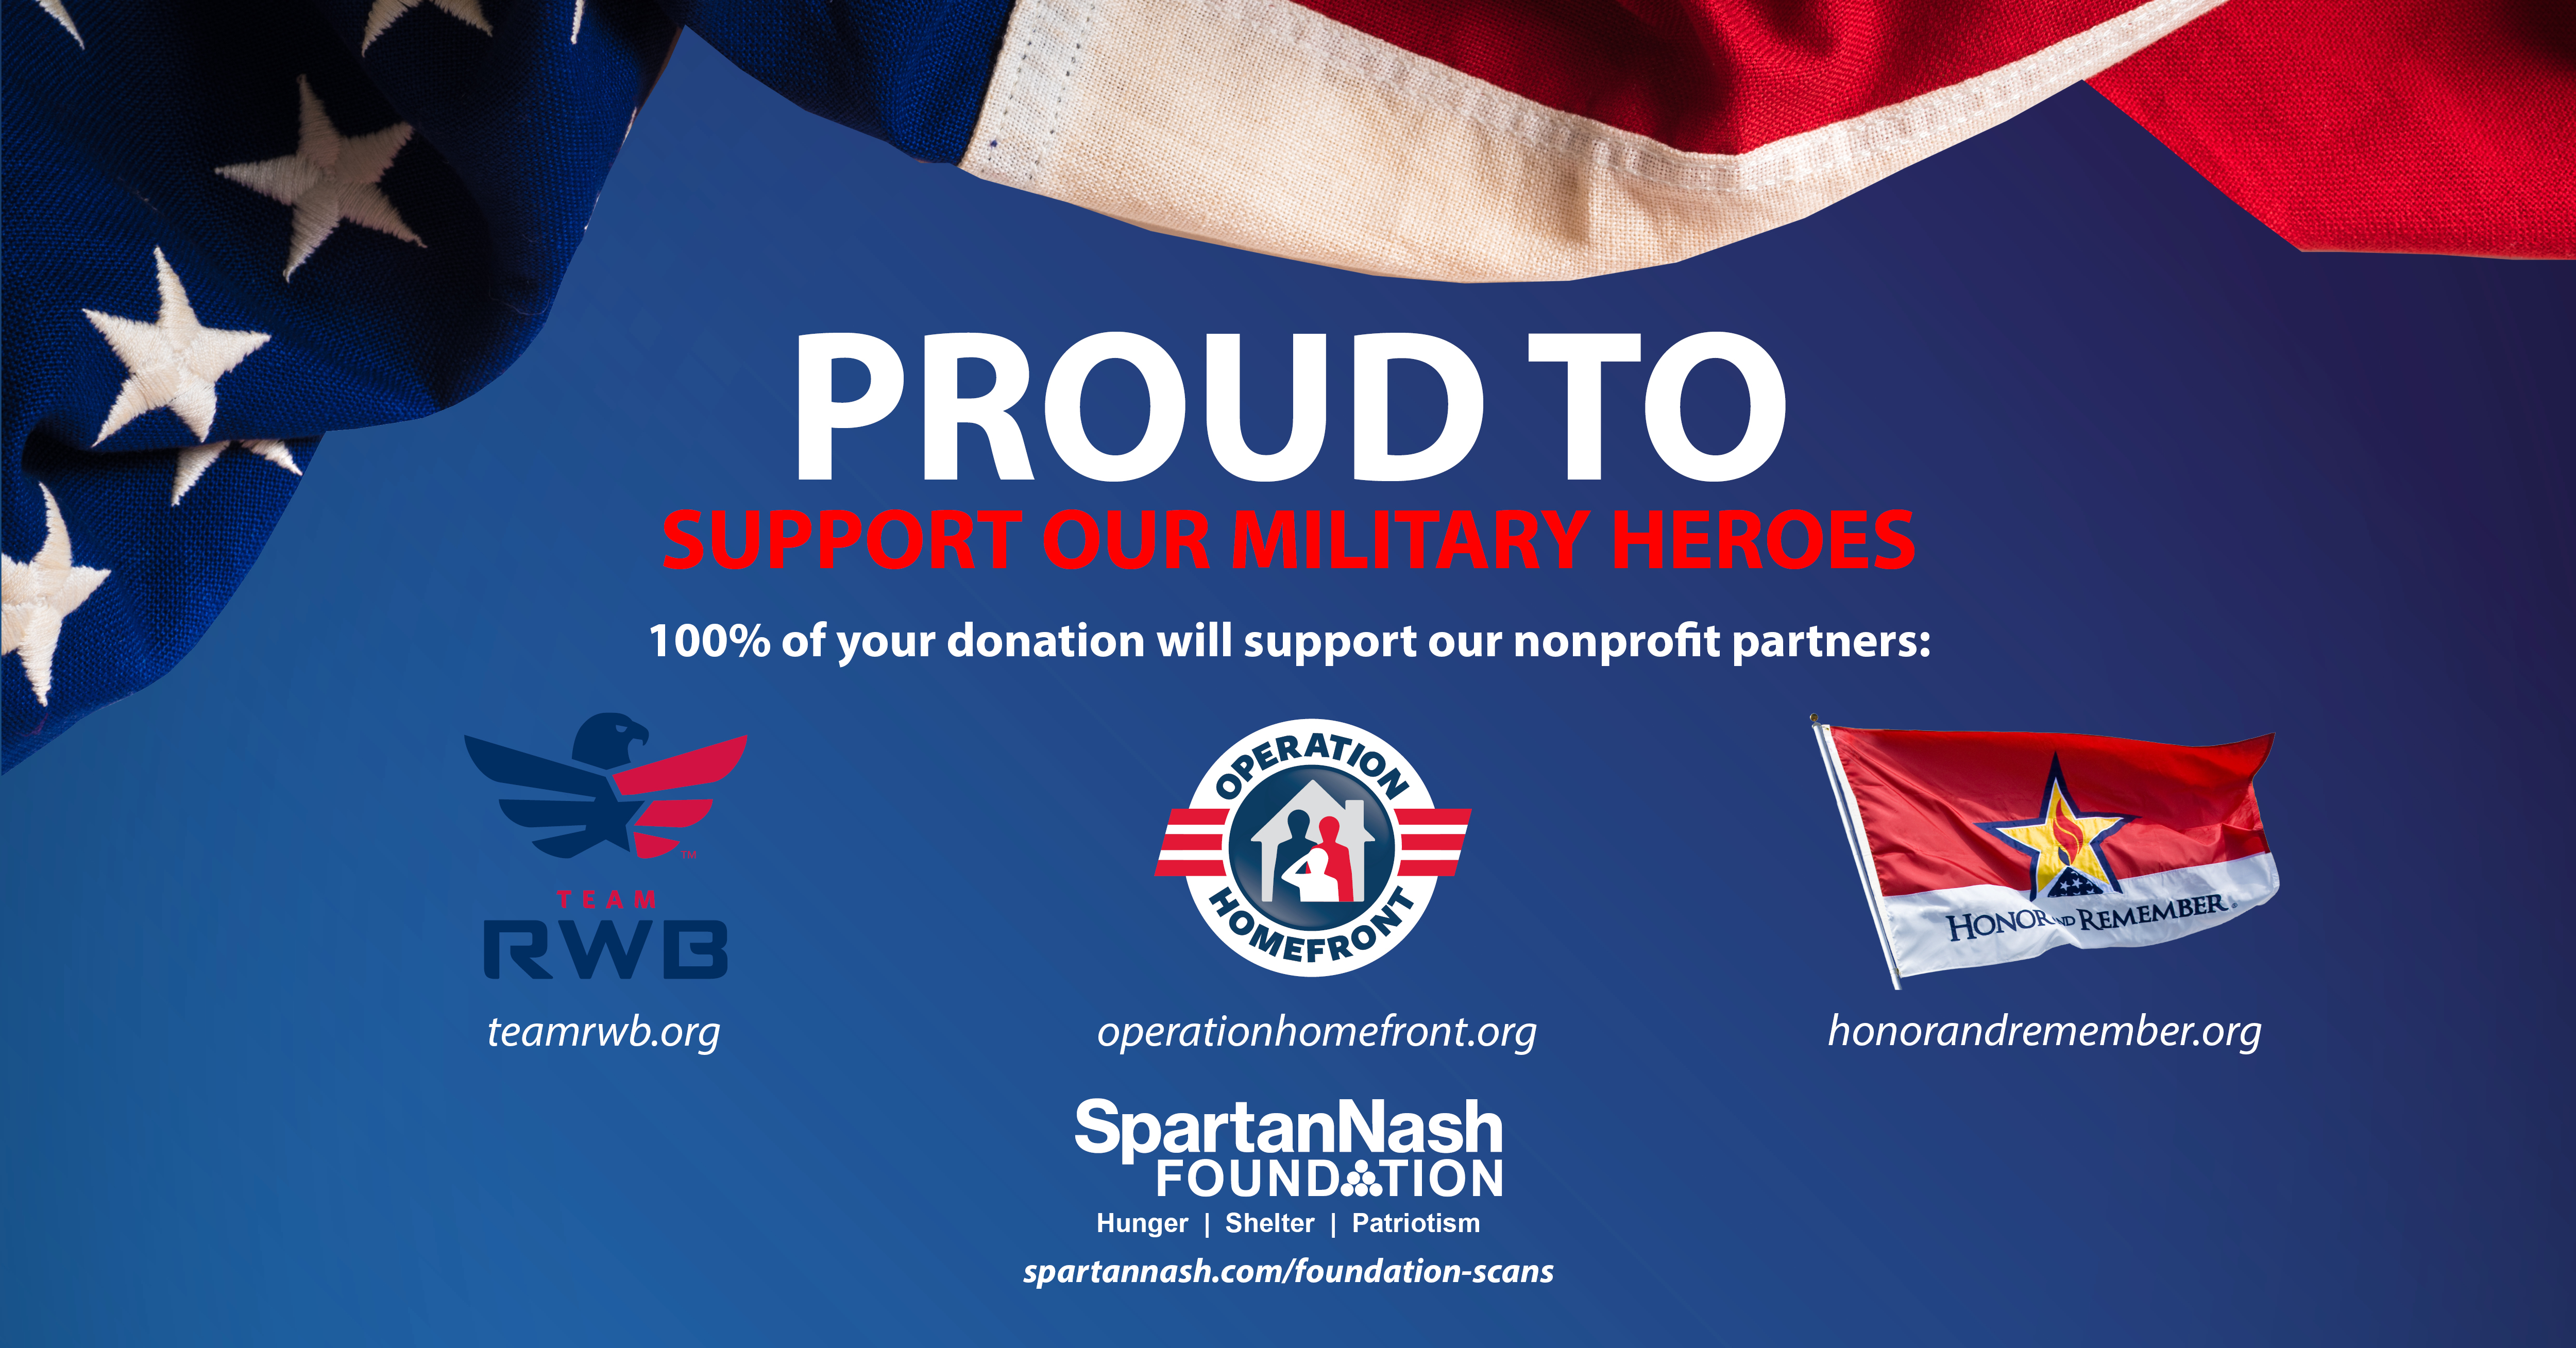 Proud to support our military heroes